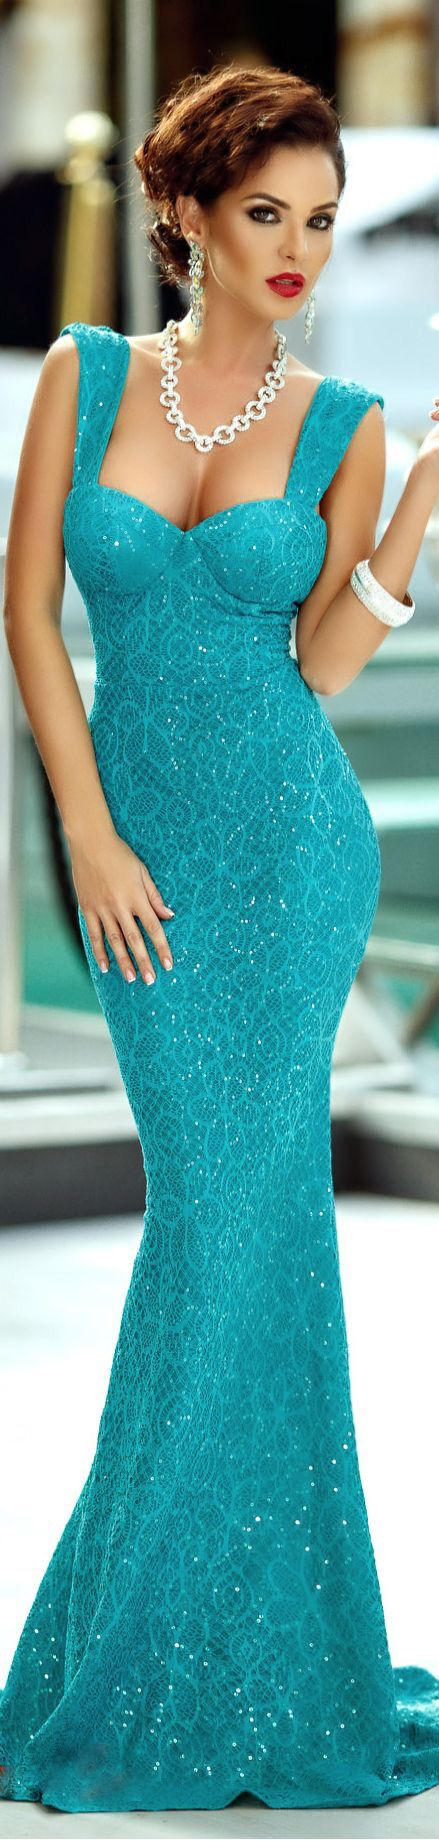 Luxe Gown in Turquoise - LUXURY.COM | FASHION STYLE | Pinterest ...